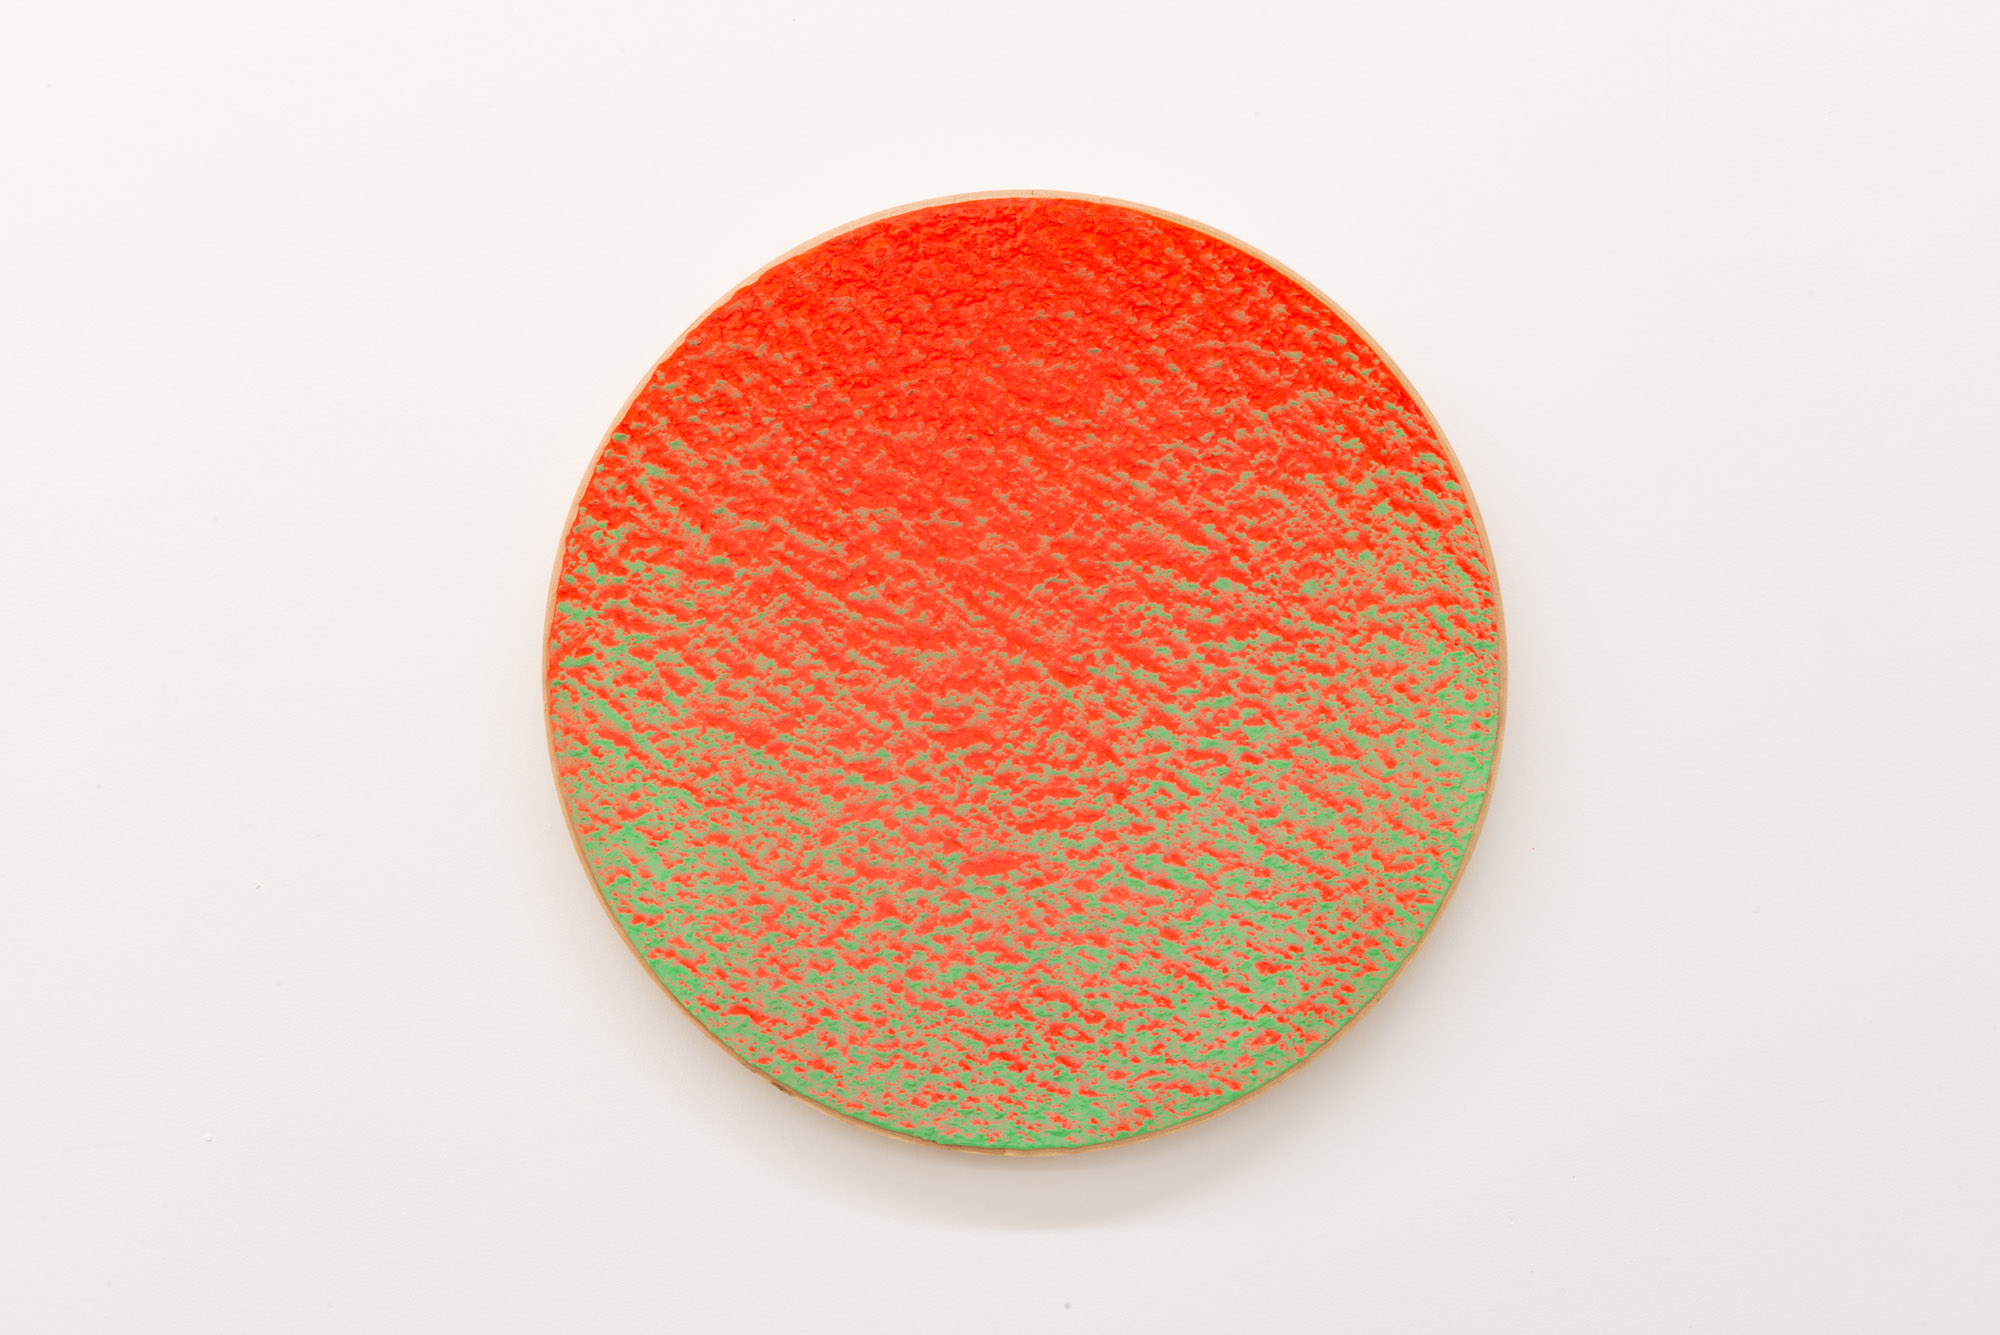 """Pierre Julien,  In the Deepest Oceans  - B009, 2018, stucco, acrylic and spray paint on wood panel, 16"""" diameter (41 cm)"""